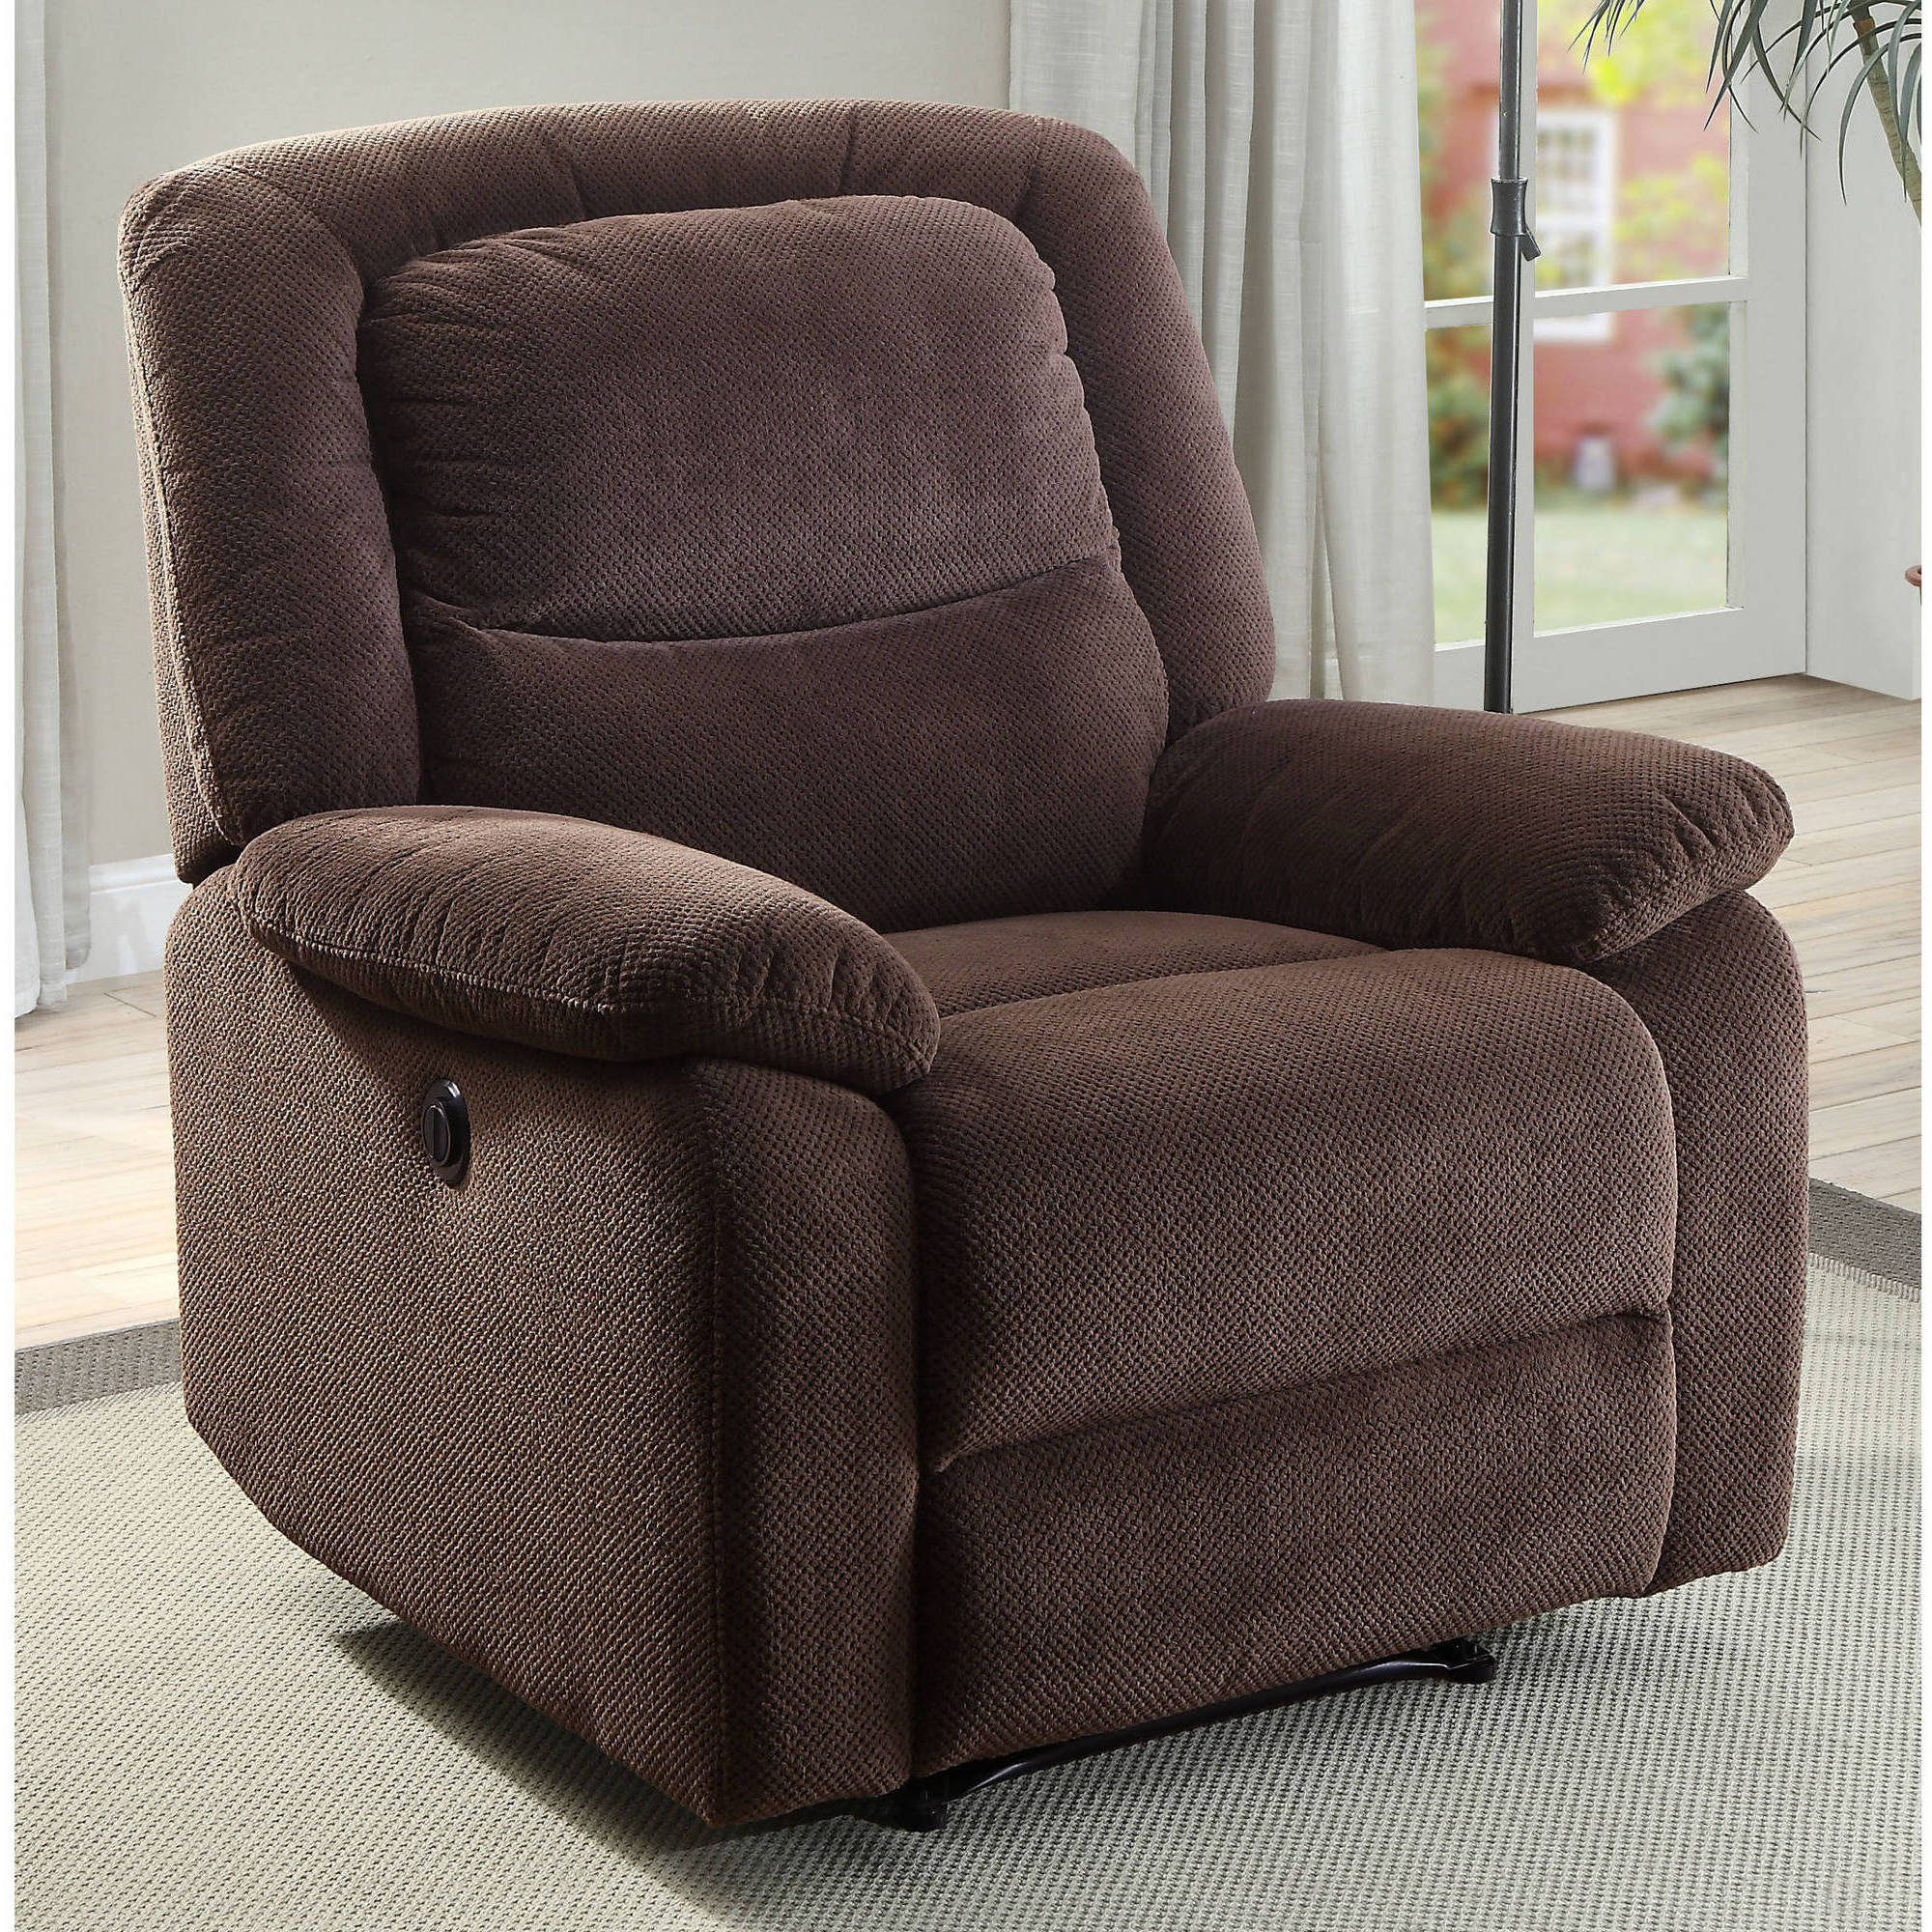 Serta Push-Button Power Recliner with Deep Body Cushions, Ultra Comfortable Reclining Chair, Multiple Colors